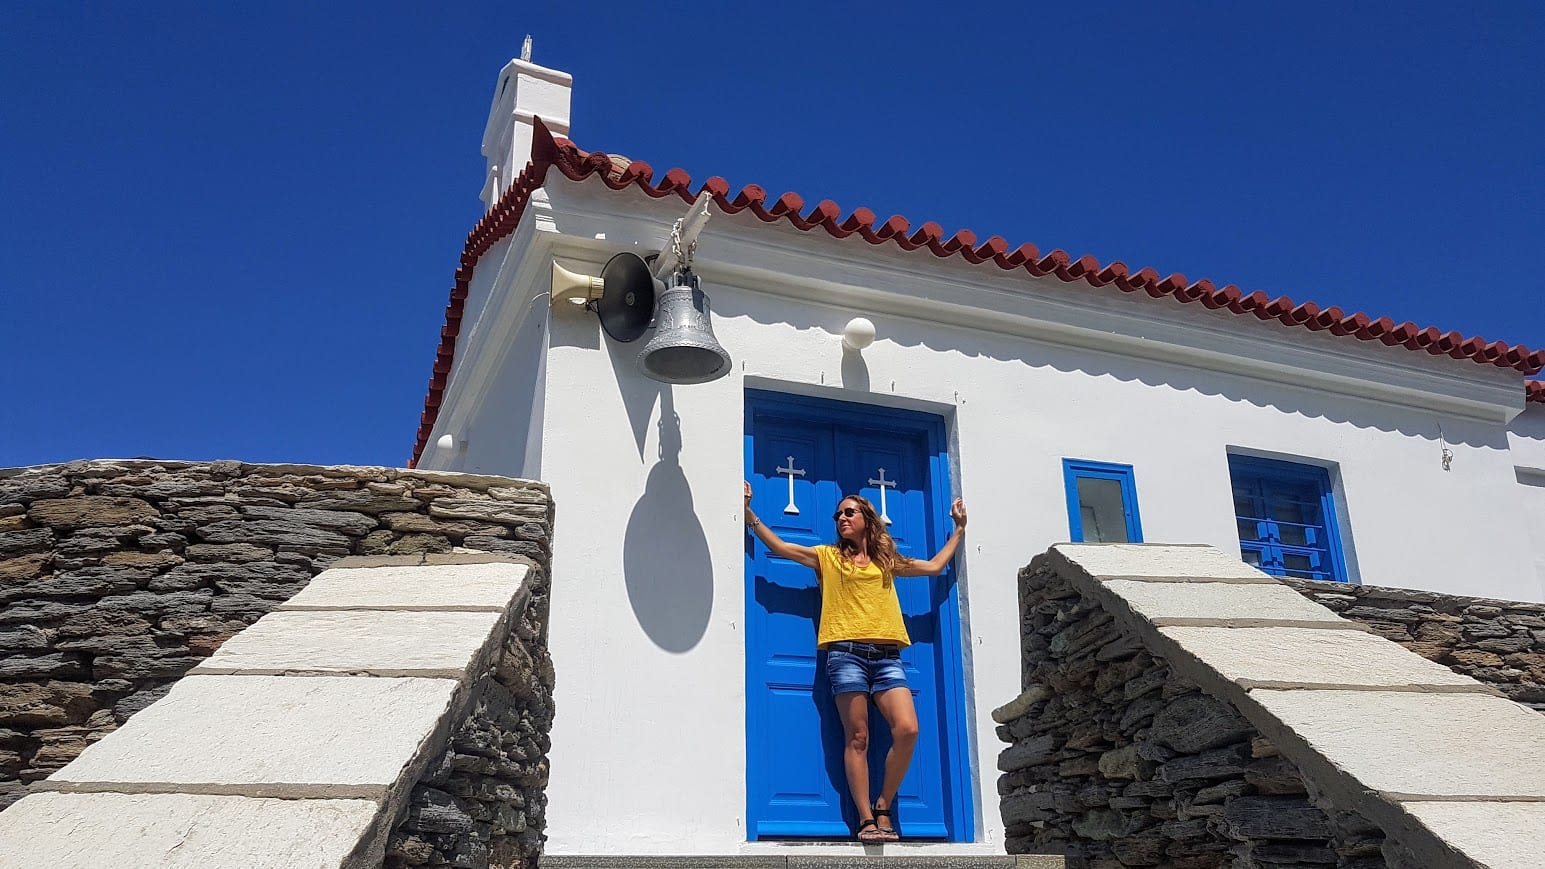 Vanessa in Andros island in Greece